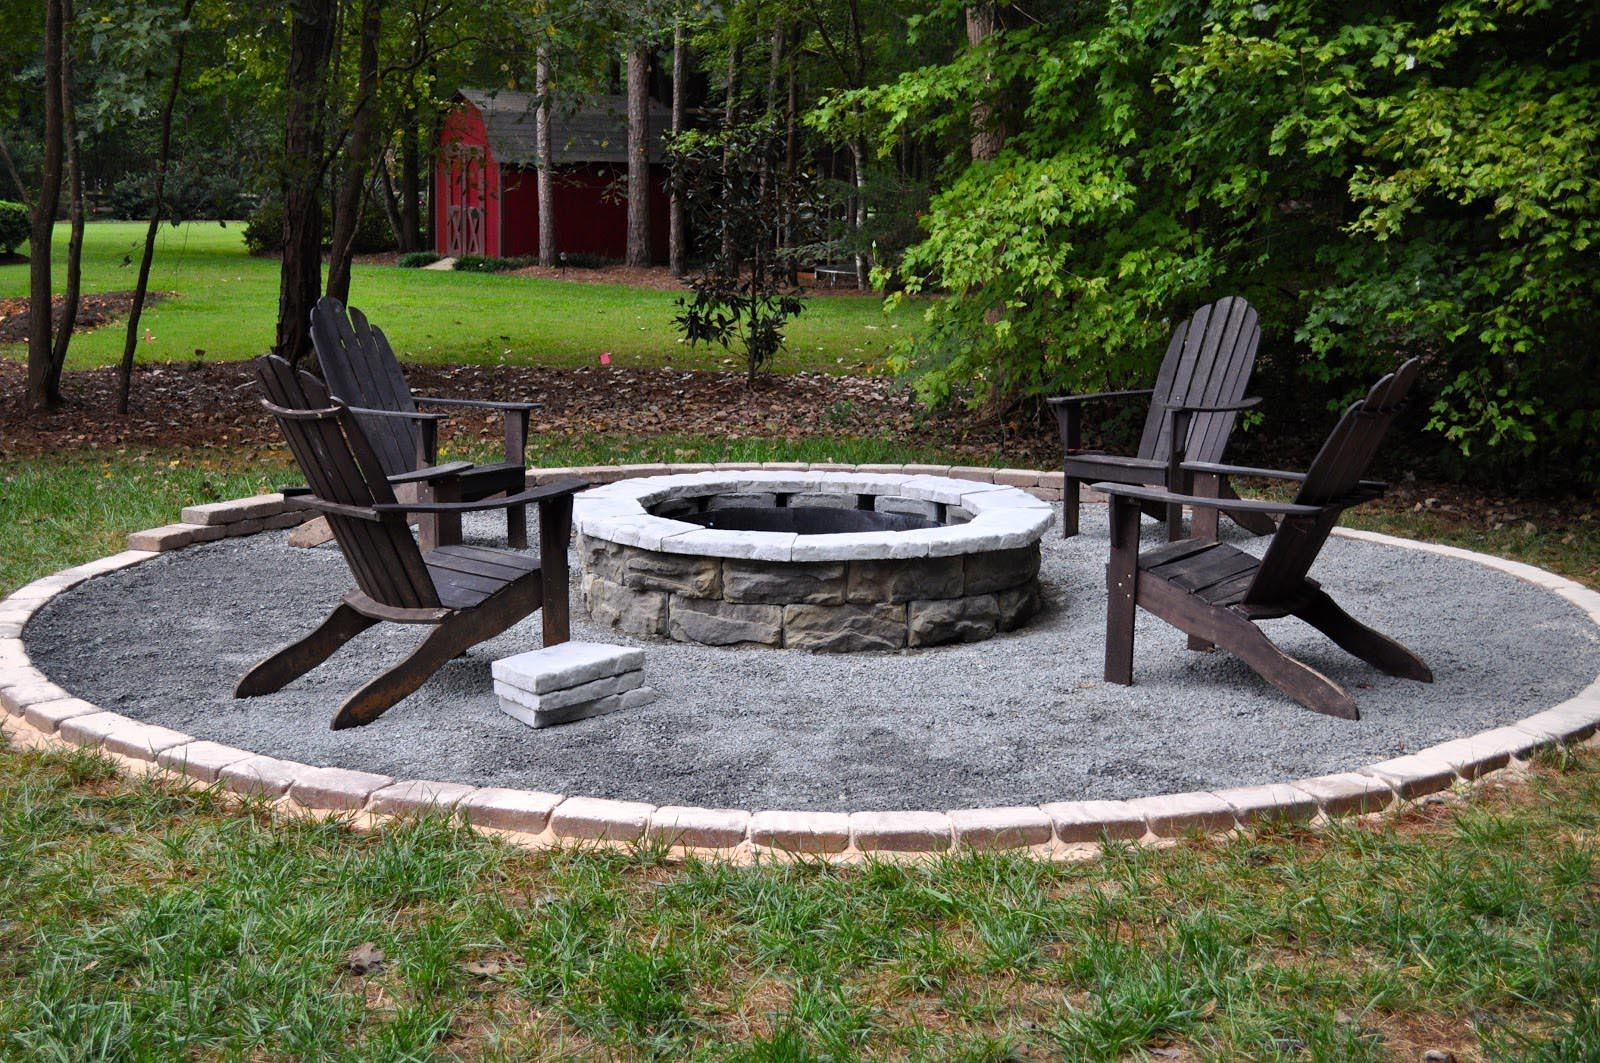 Fire Pit Plans Few Easy Steps Build Fireplace